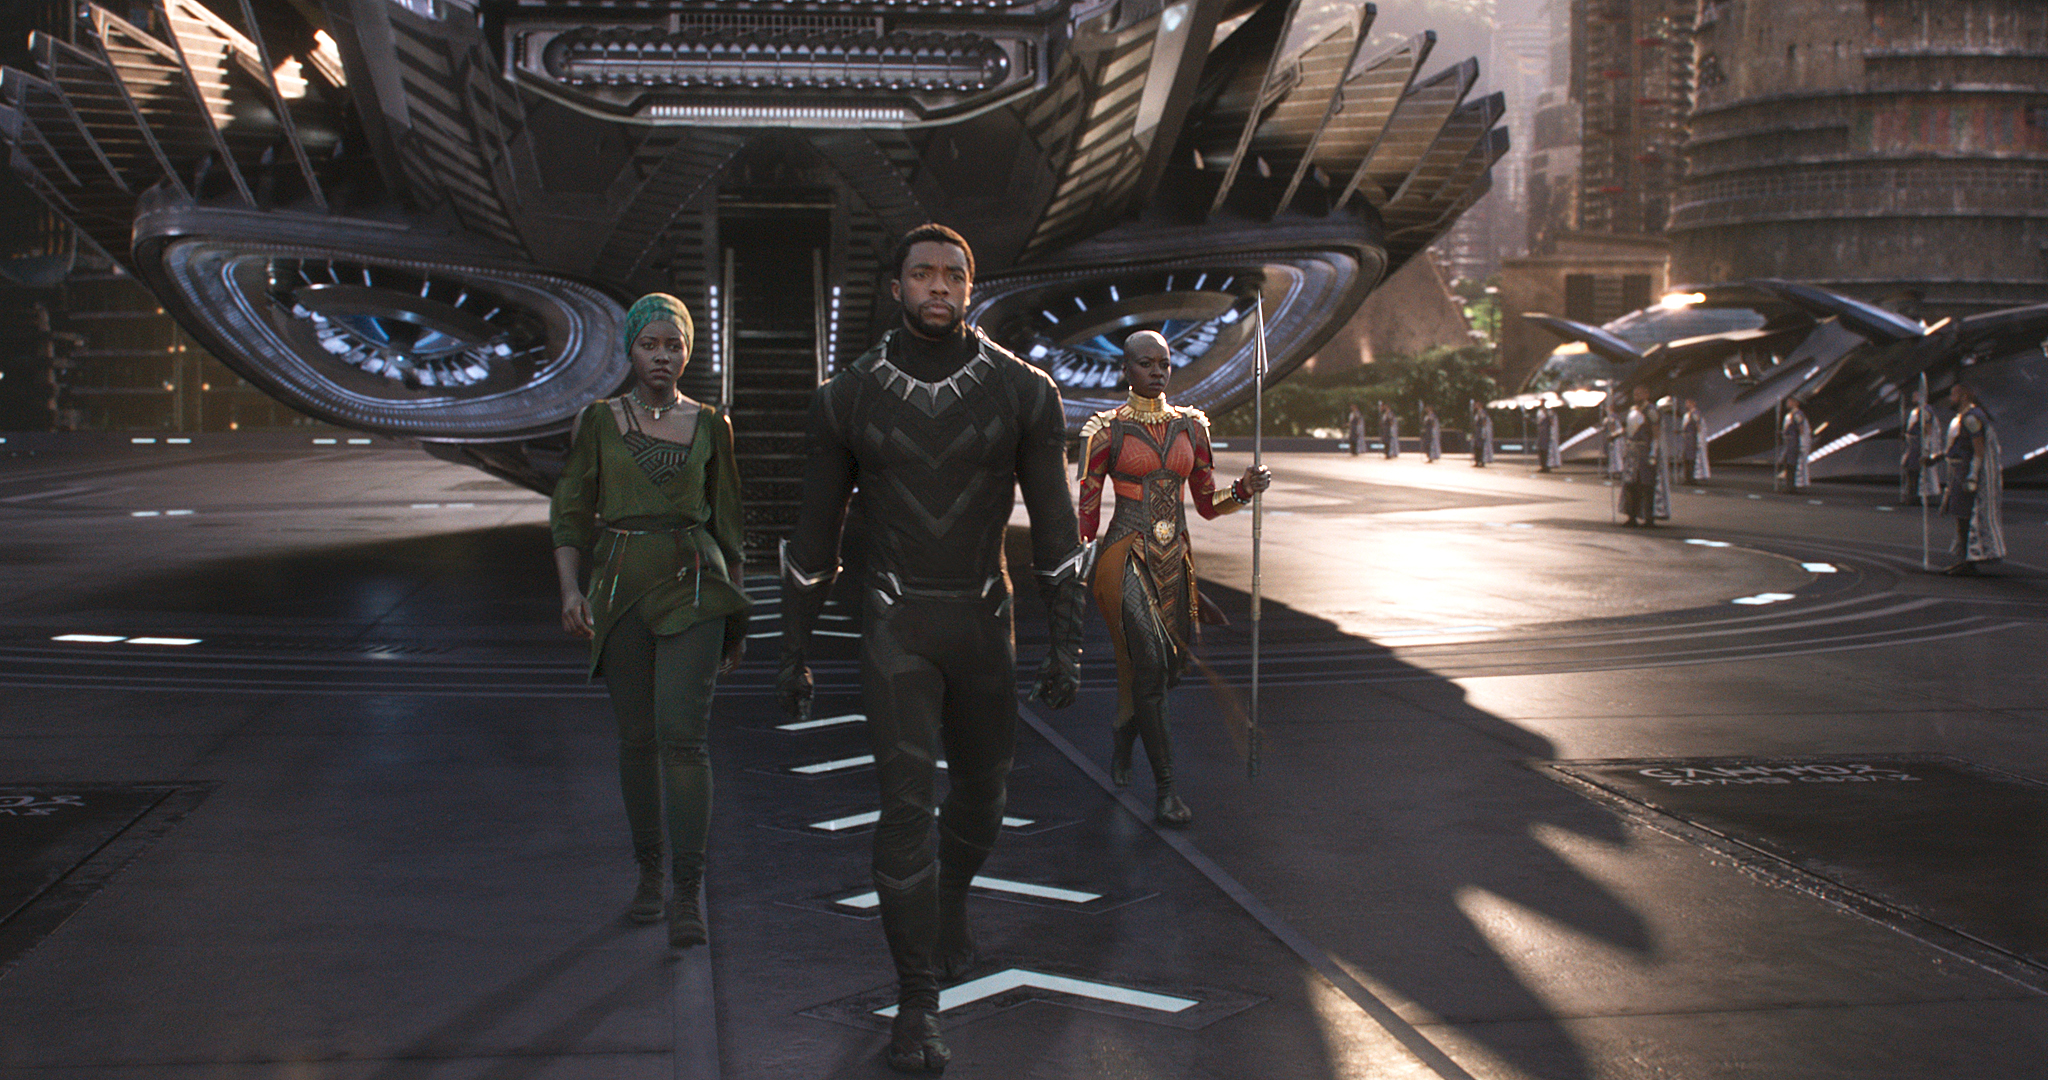 Black Panther — on and off-camera — is a woke superhero fantasy set in today's reality